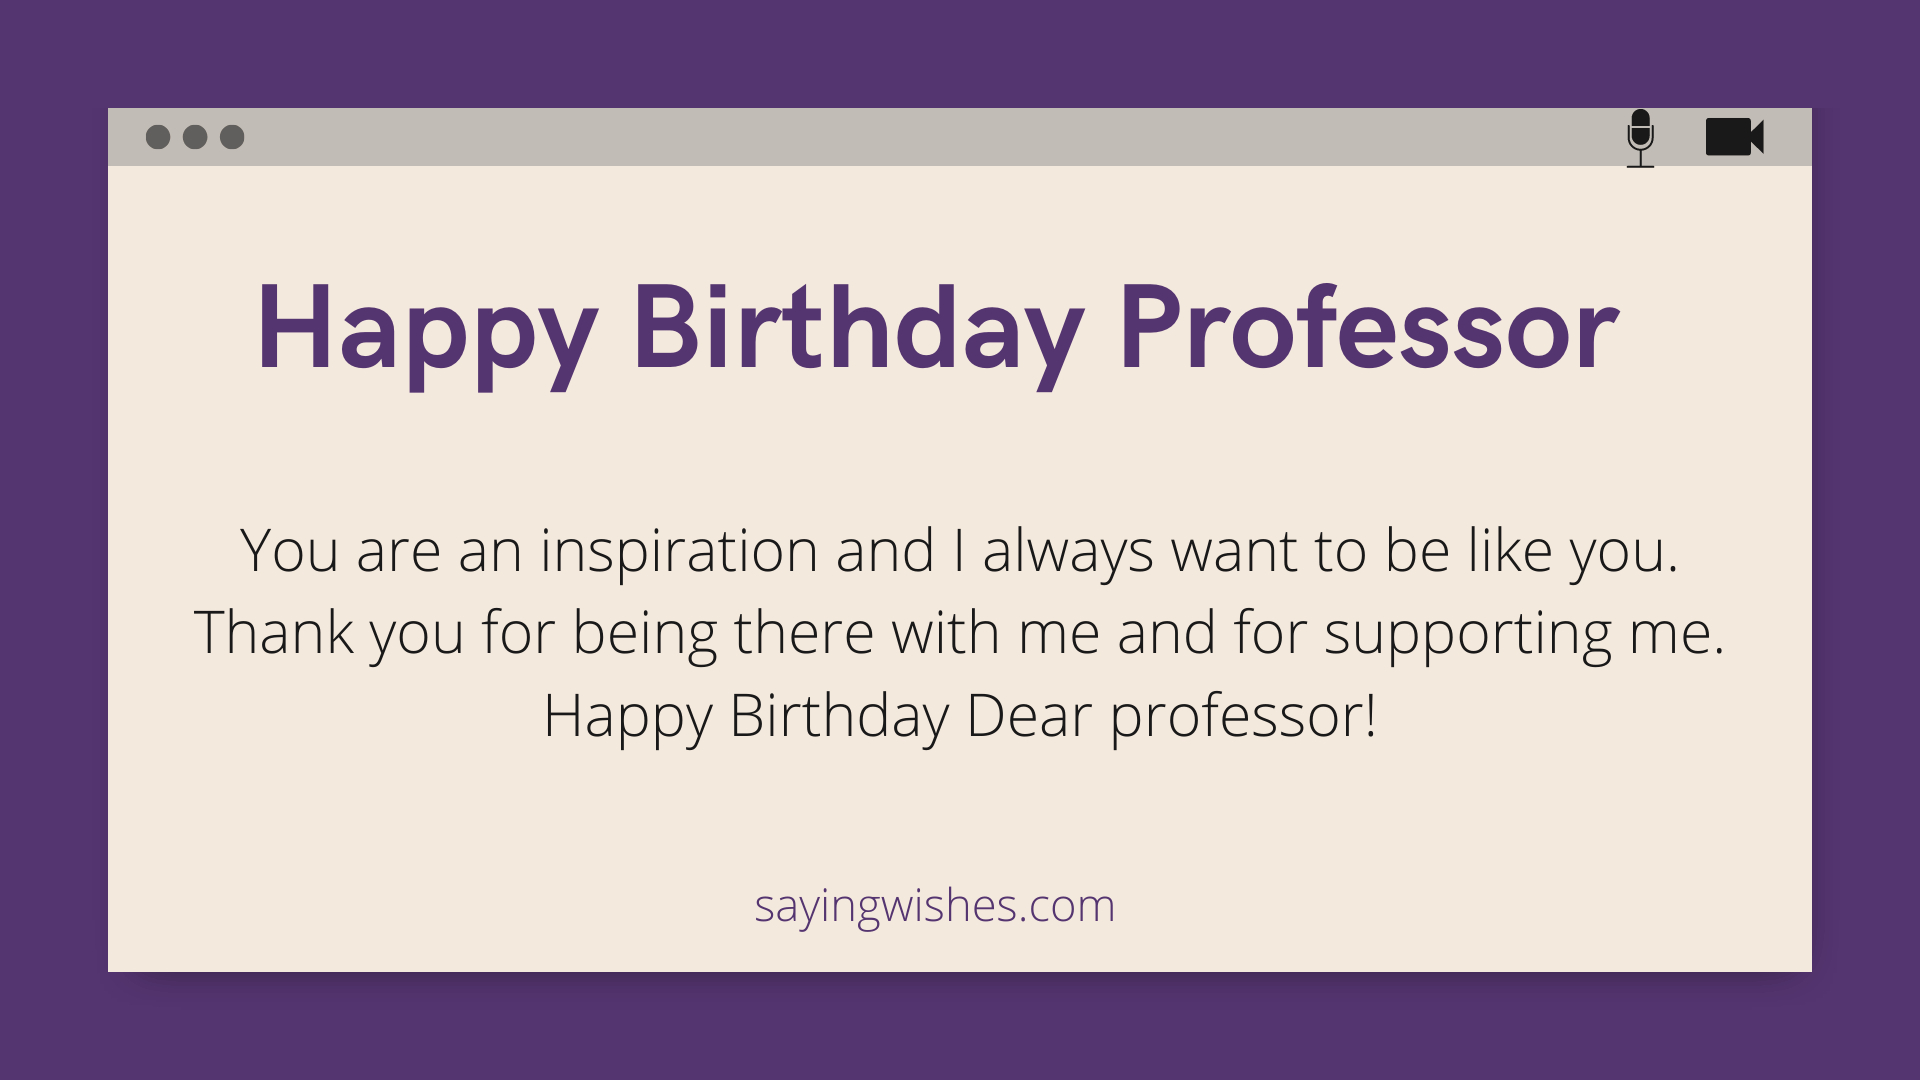 bday messages for professor sir or mam